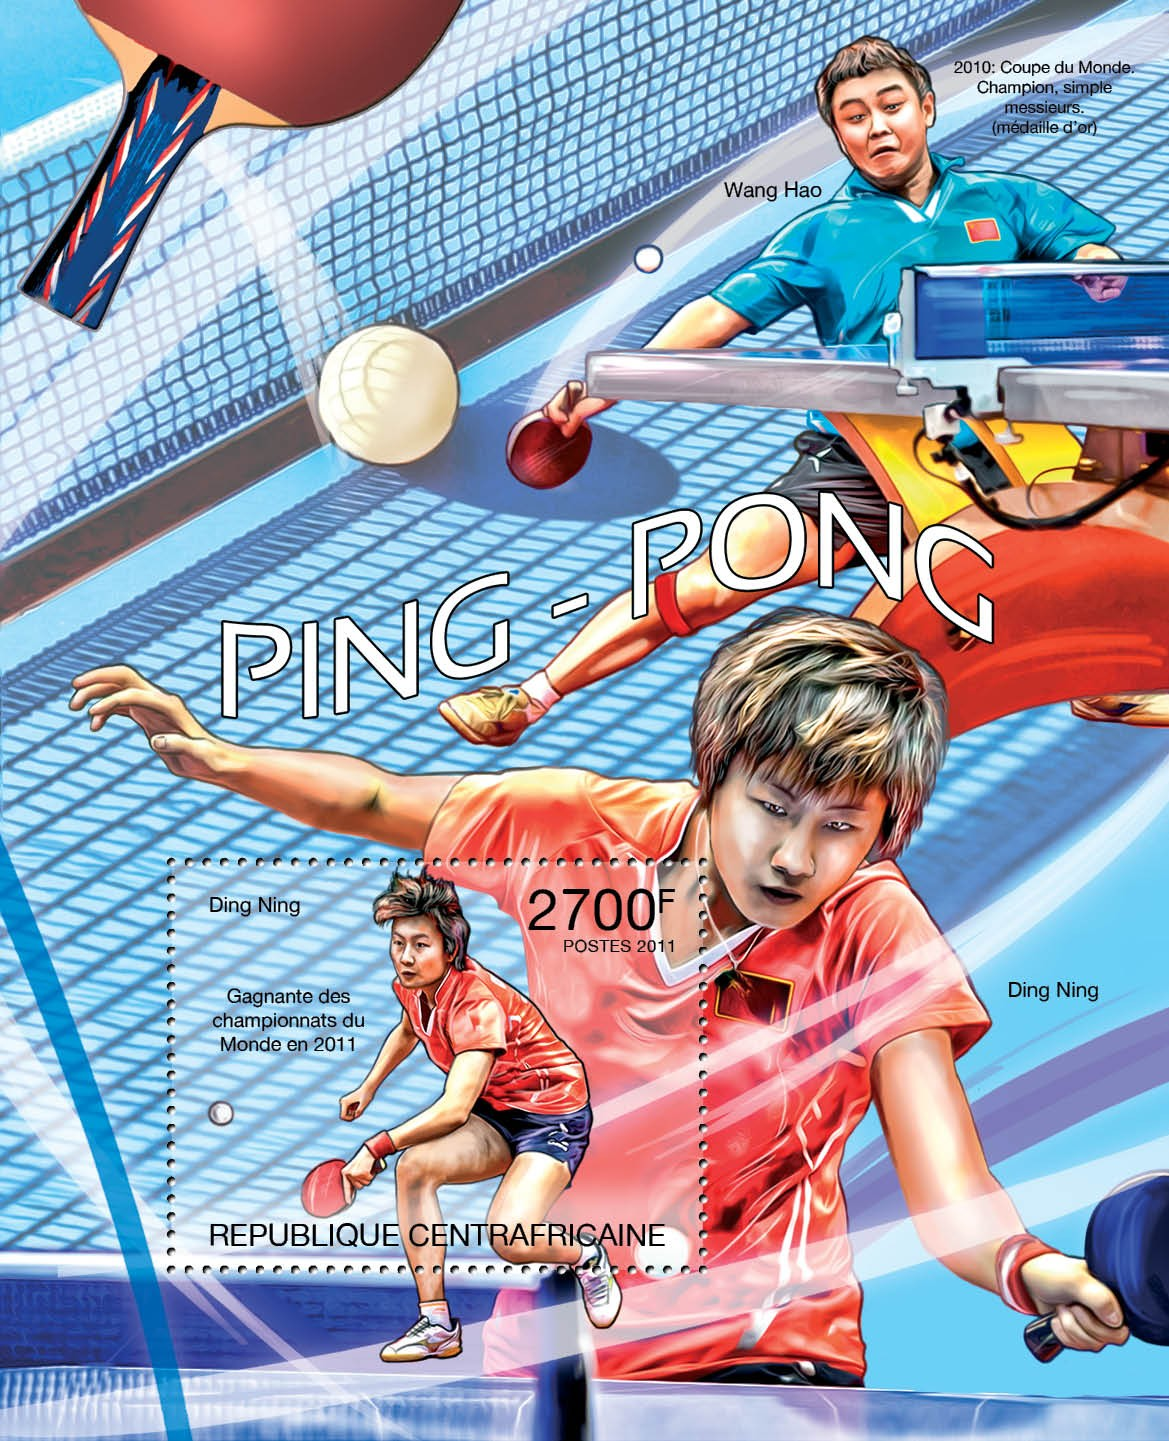 Table Tennis, (Ding Ning). - Issue of Central African republic postage stamps